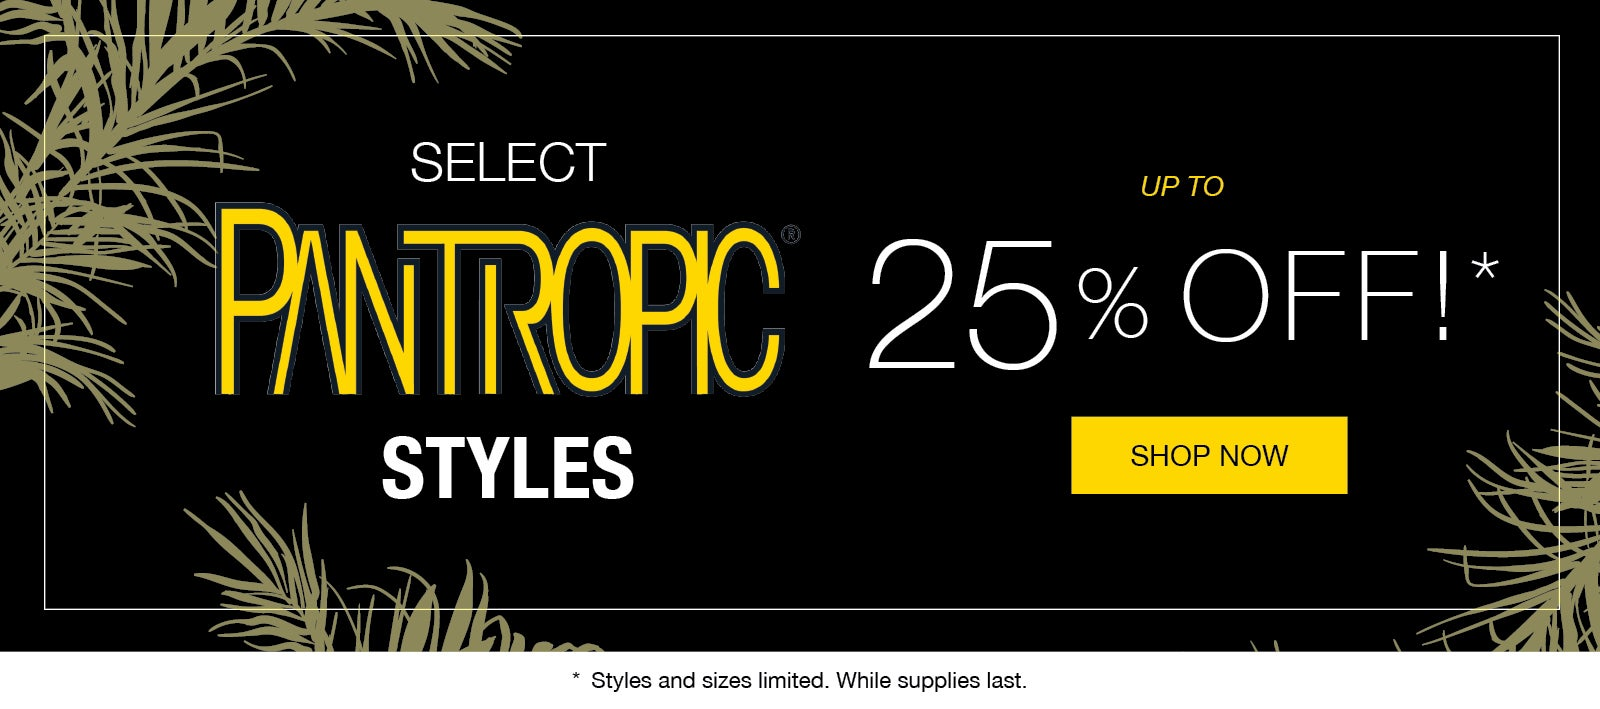 Up to 25% Off Select Pantropic Styles